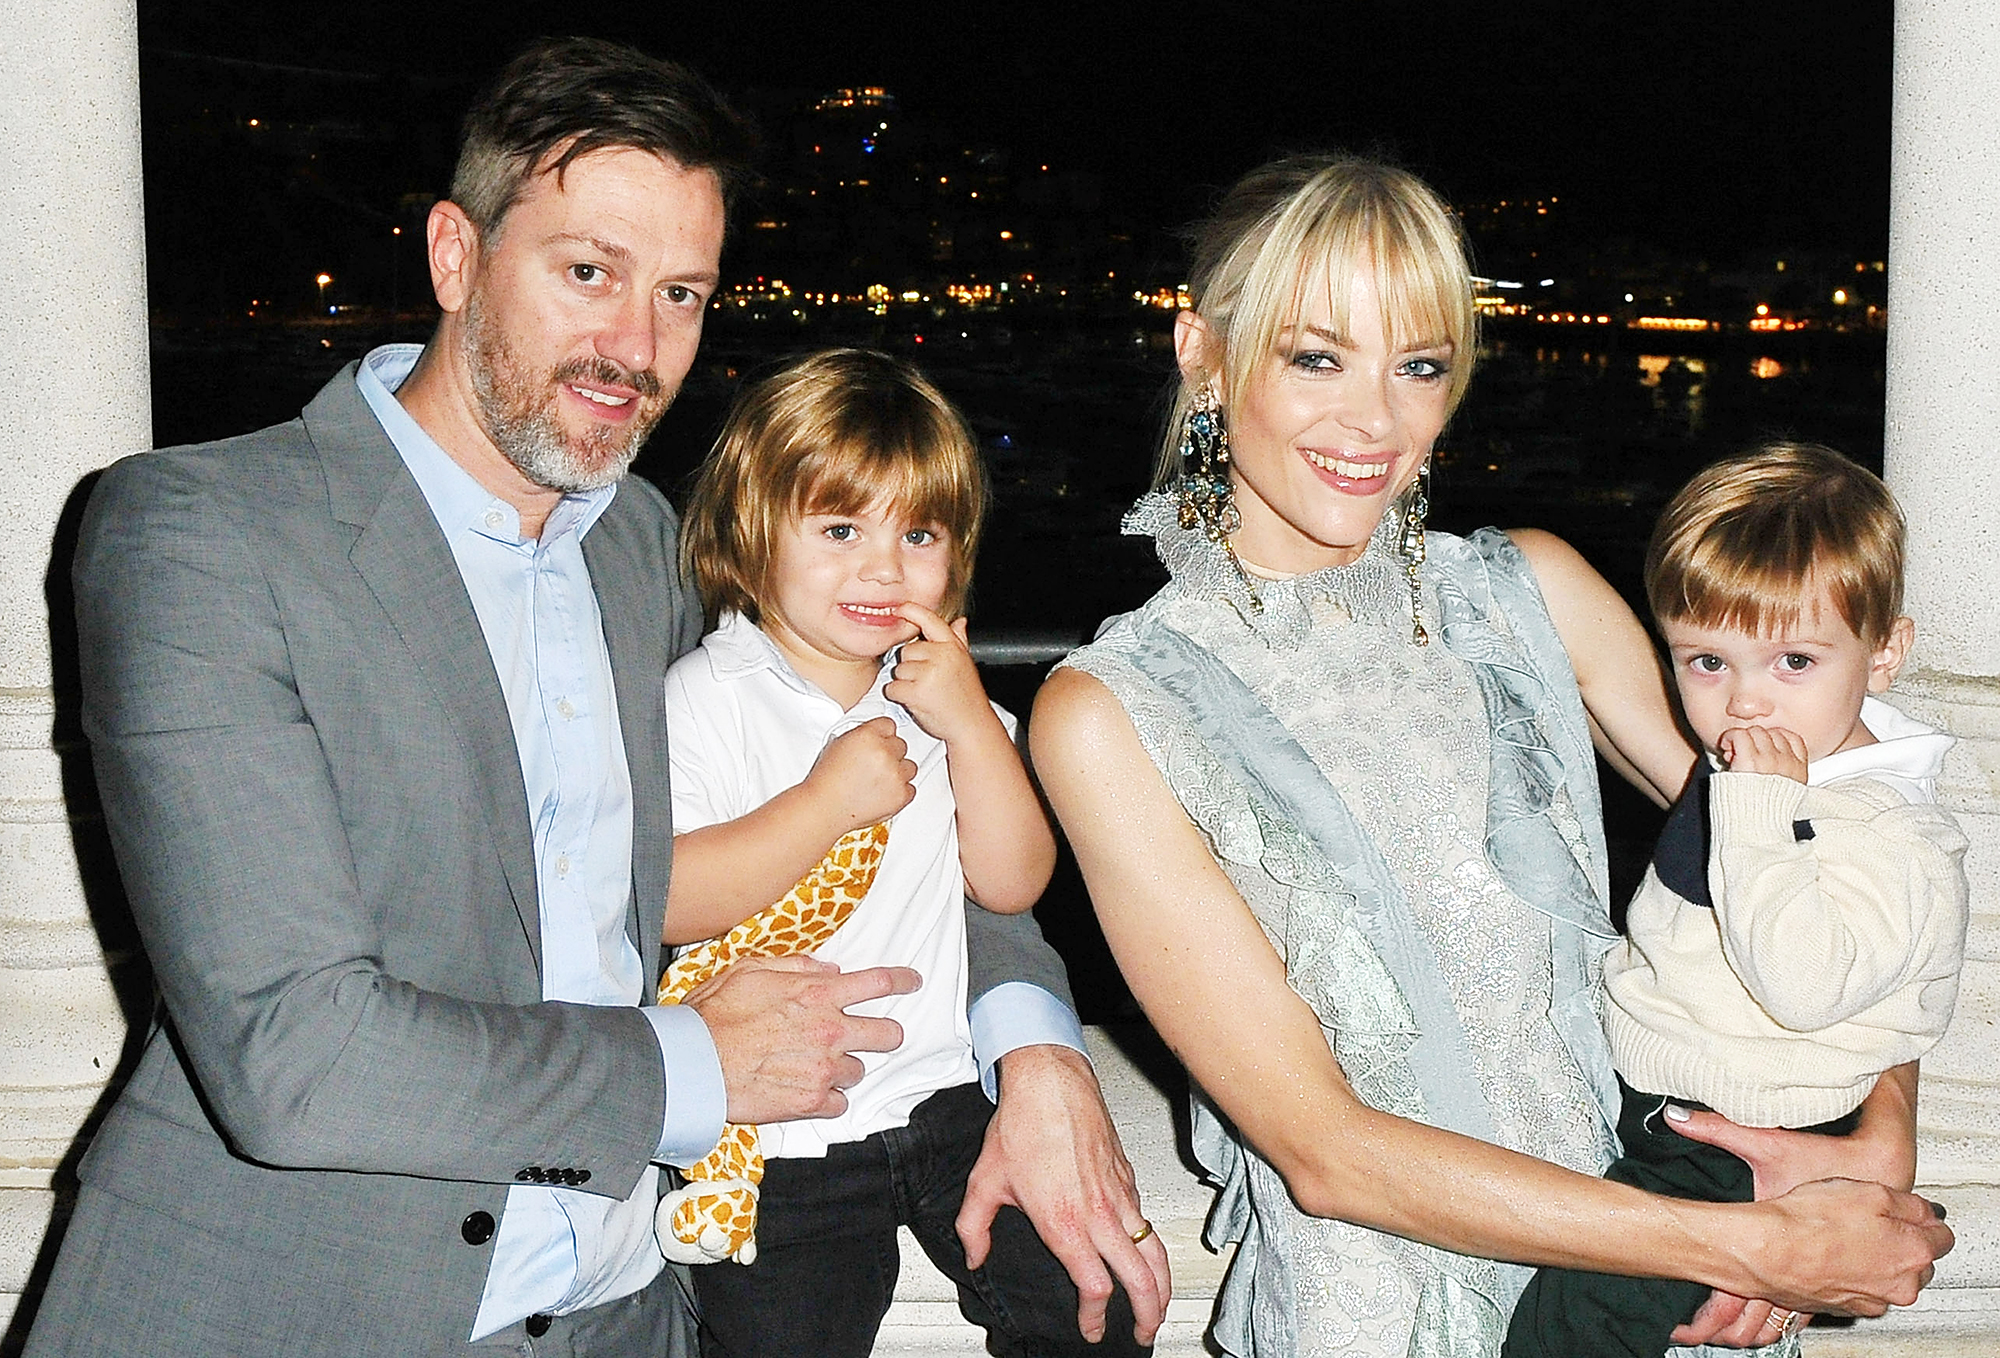 How Jaime King, Husband Kyle Newman Keep Their Marriage'Sexy'